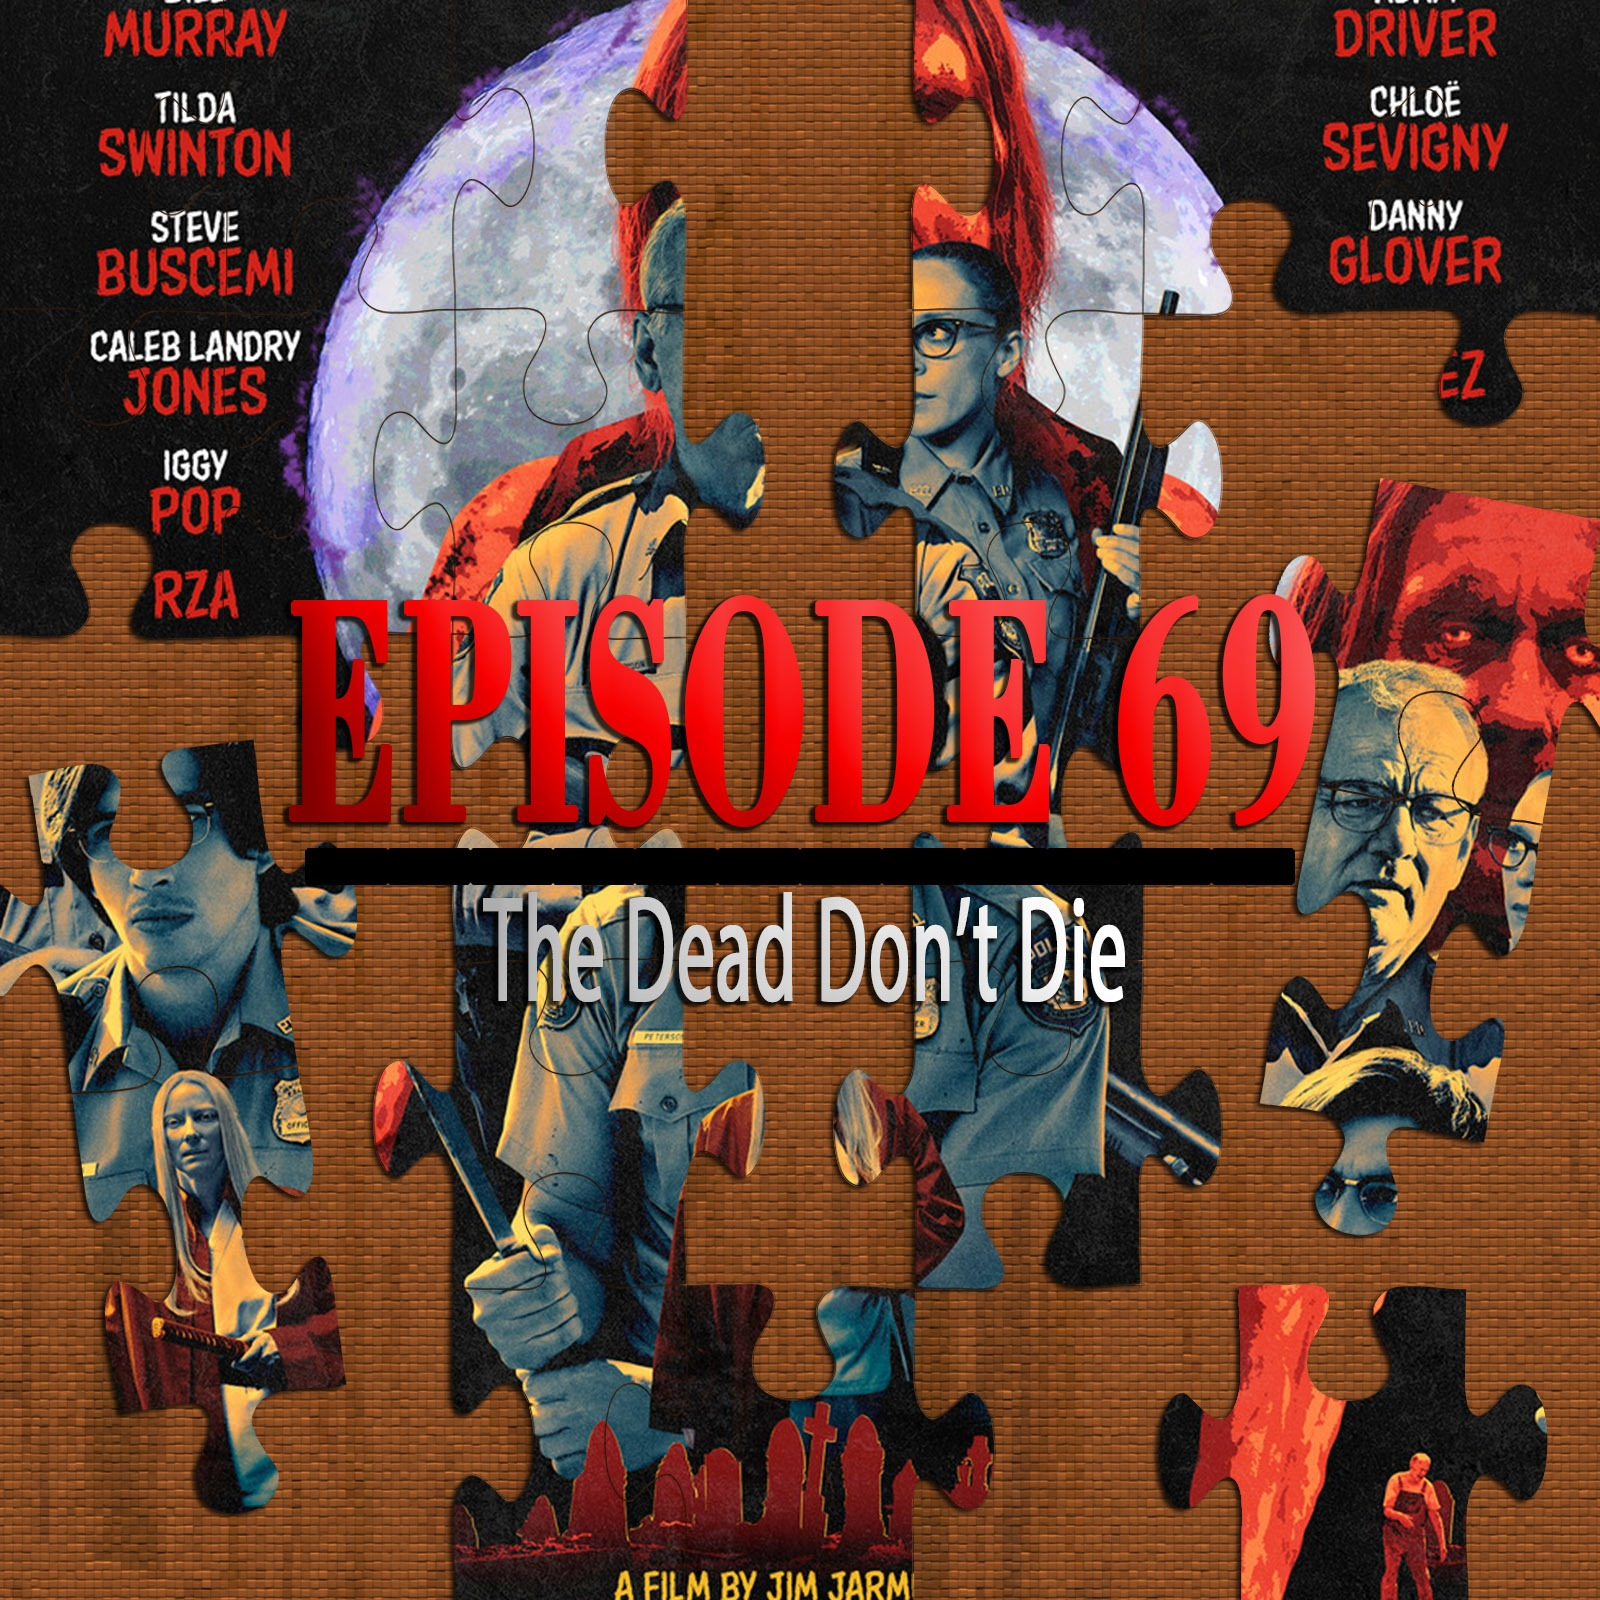 The Dead Don't Die (Featuring Phil A)